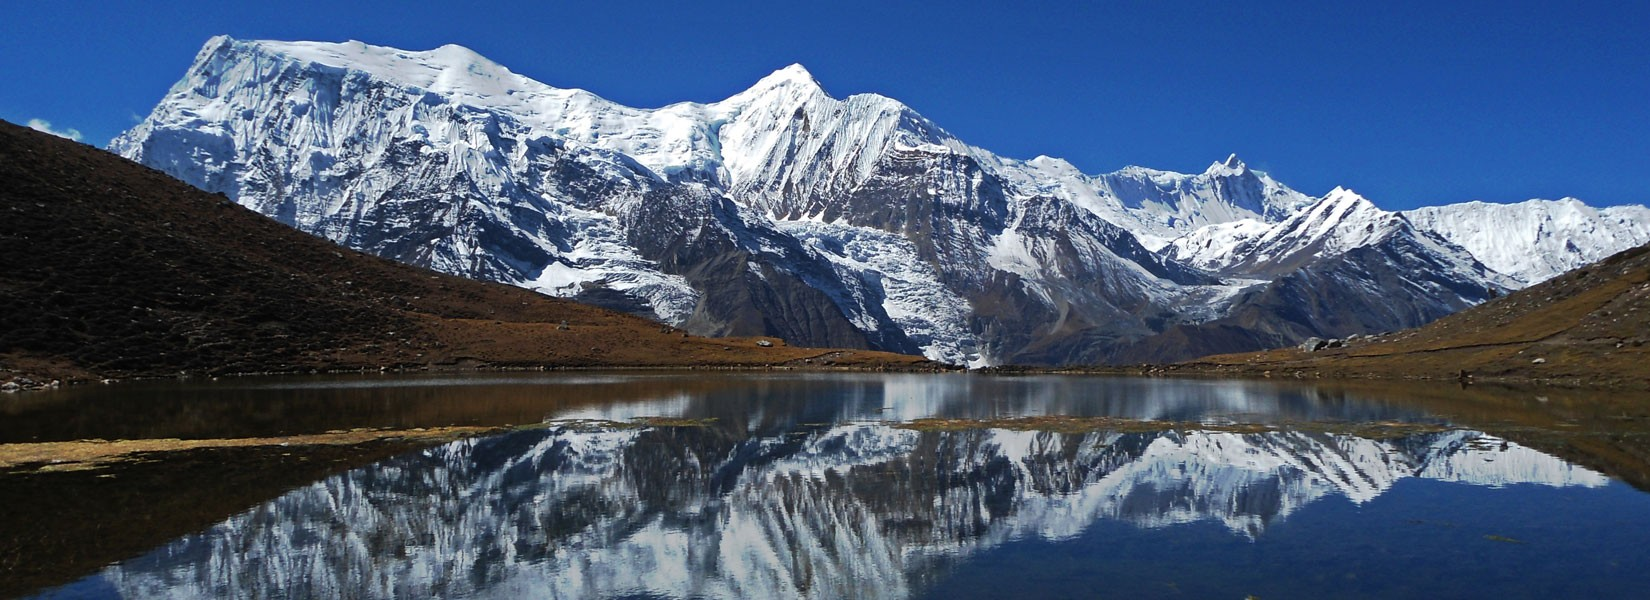 View of Ice lake, Annapurna III and Khangsar Kang in Annapurna Circuit Trek